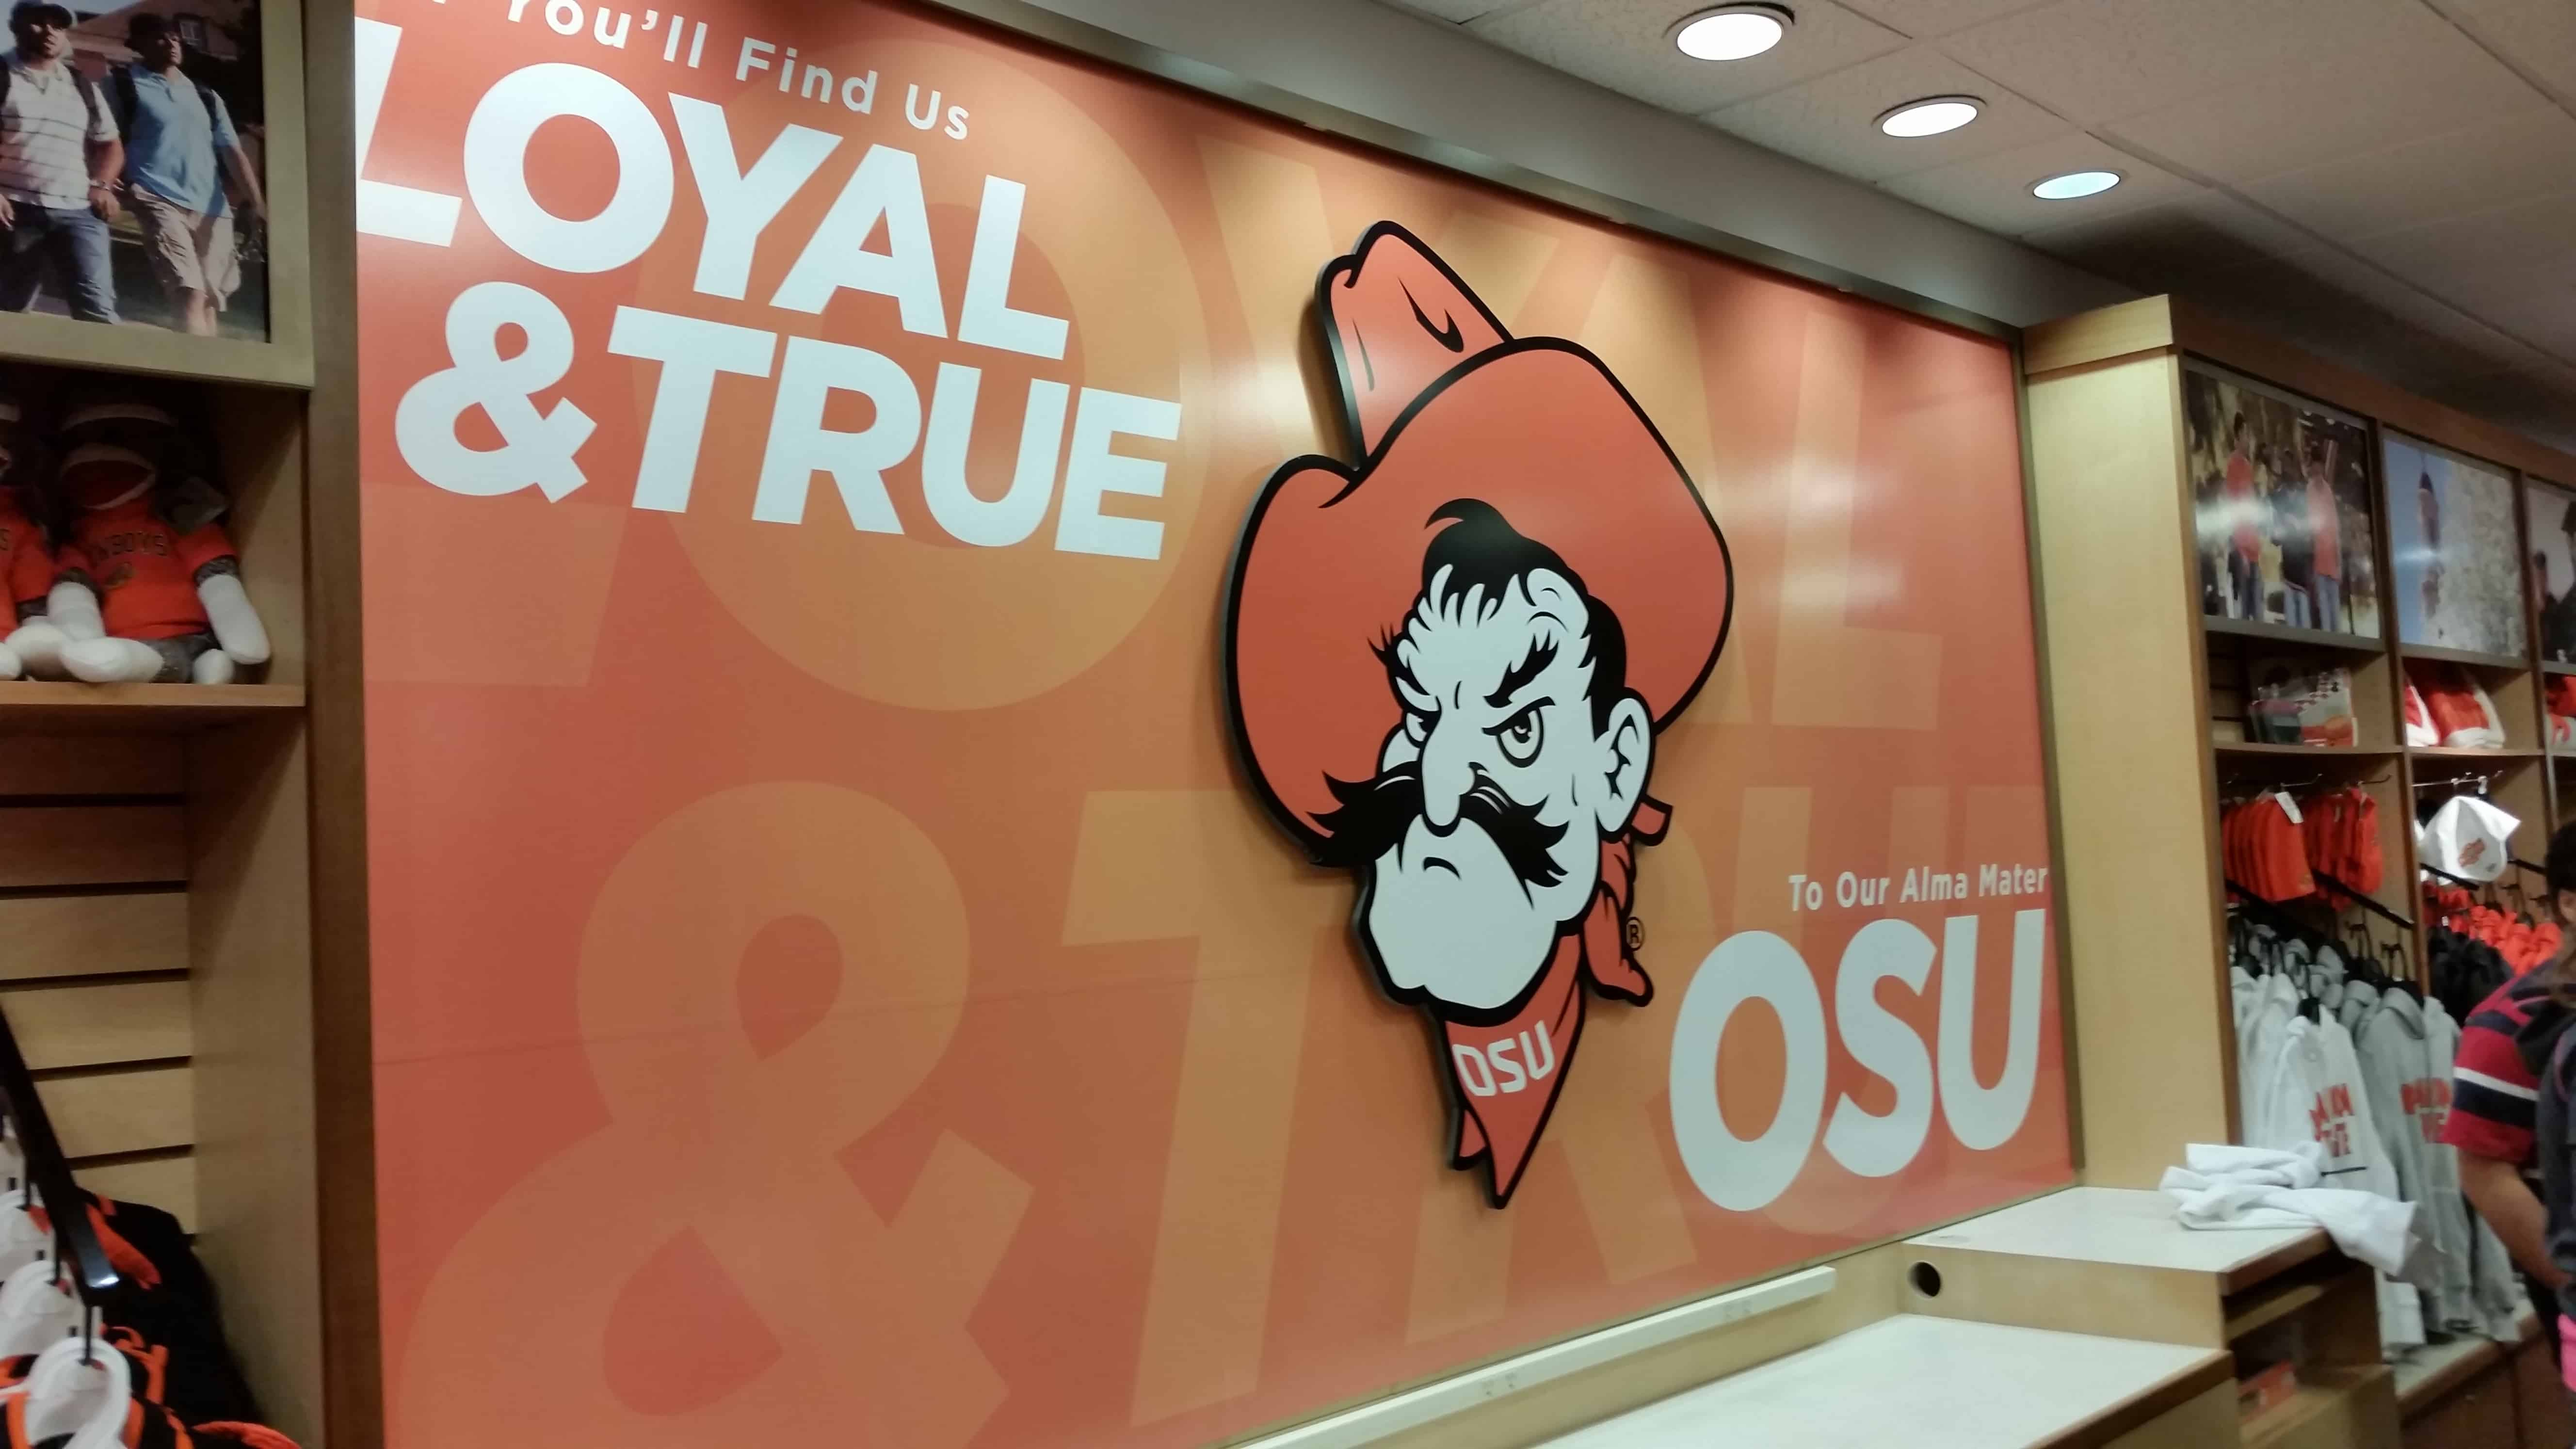 signs banners precision sign design page  oklahoma state university has opened a store for the holiday s at woodland hills mall like our page comment and share to be entered to win a 50 gift